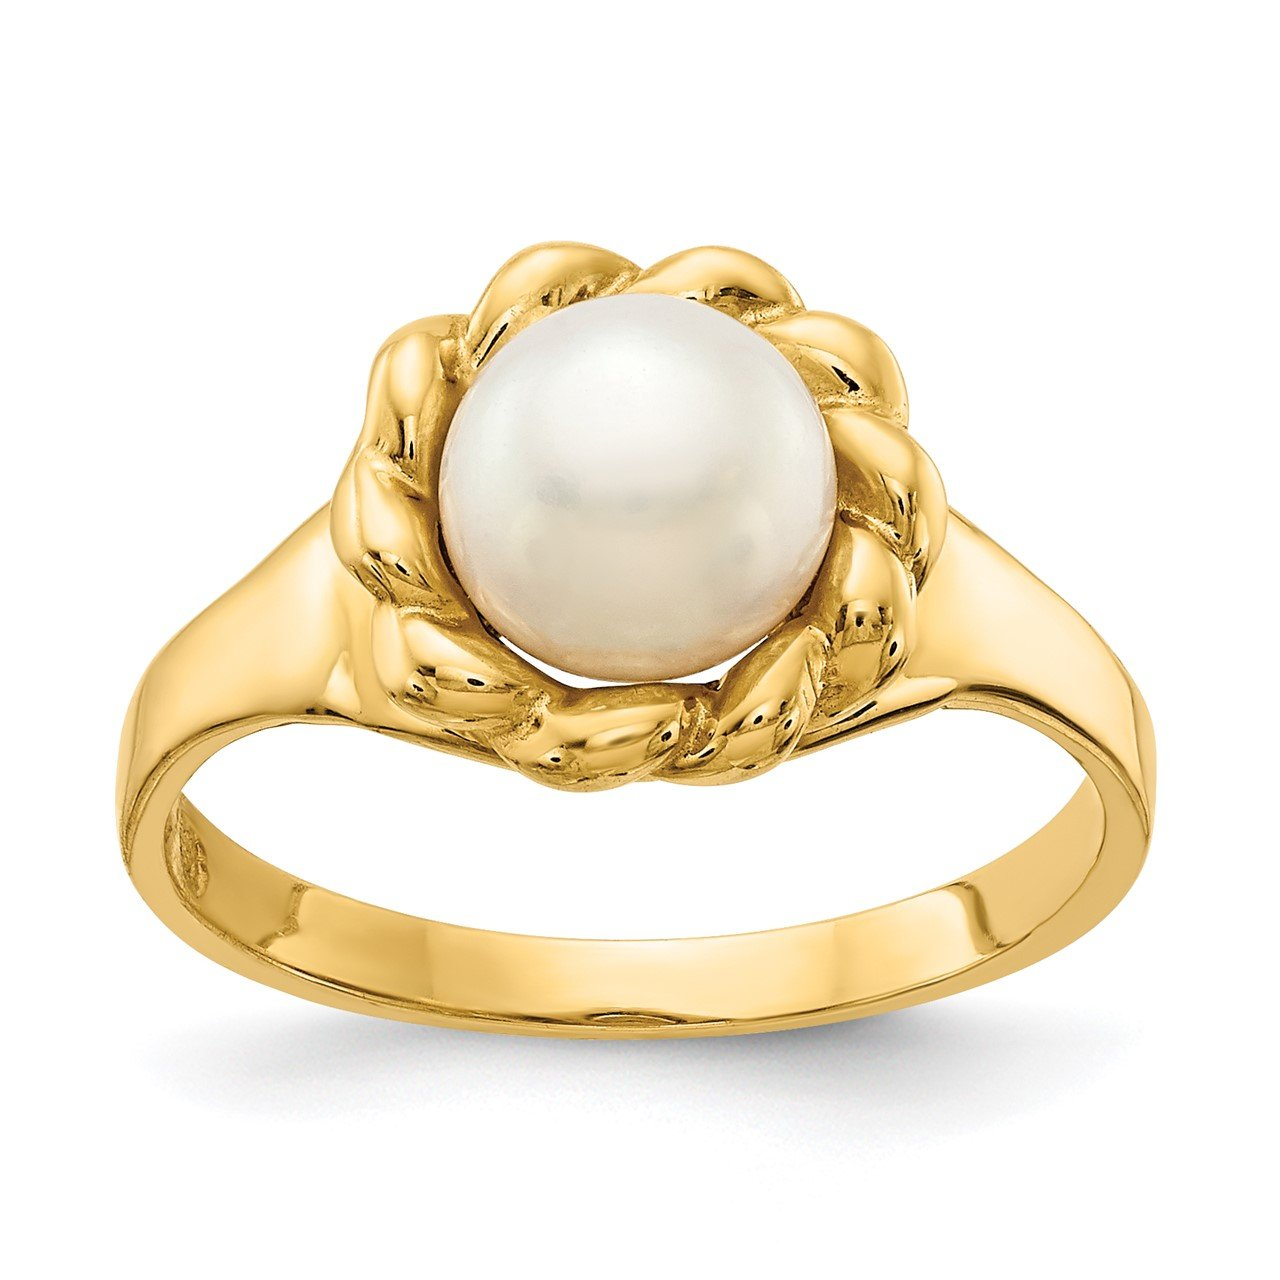 14K 6-7mm White Button Freshwater Cultured Pearl Ring